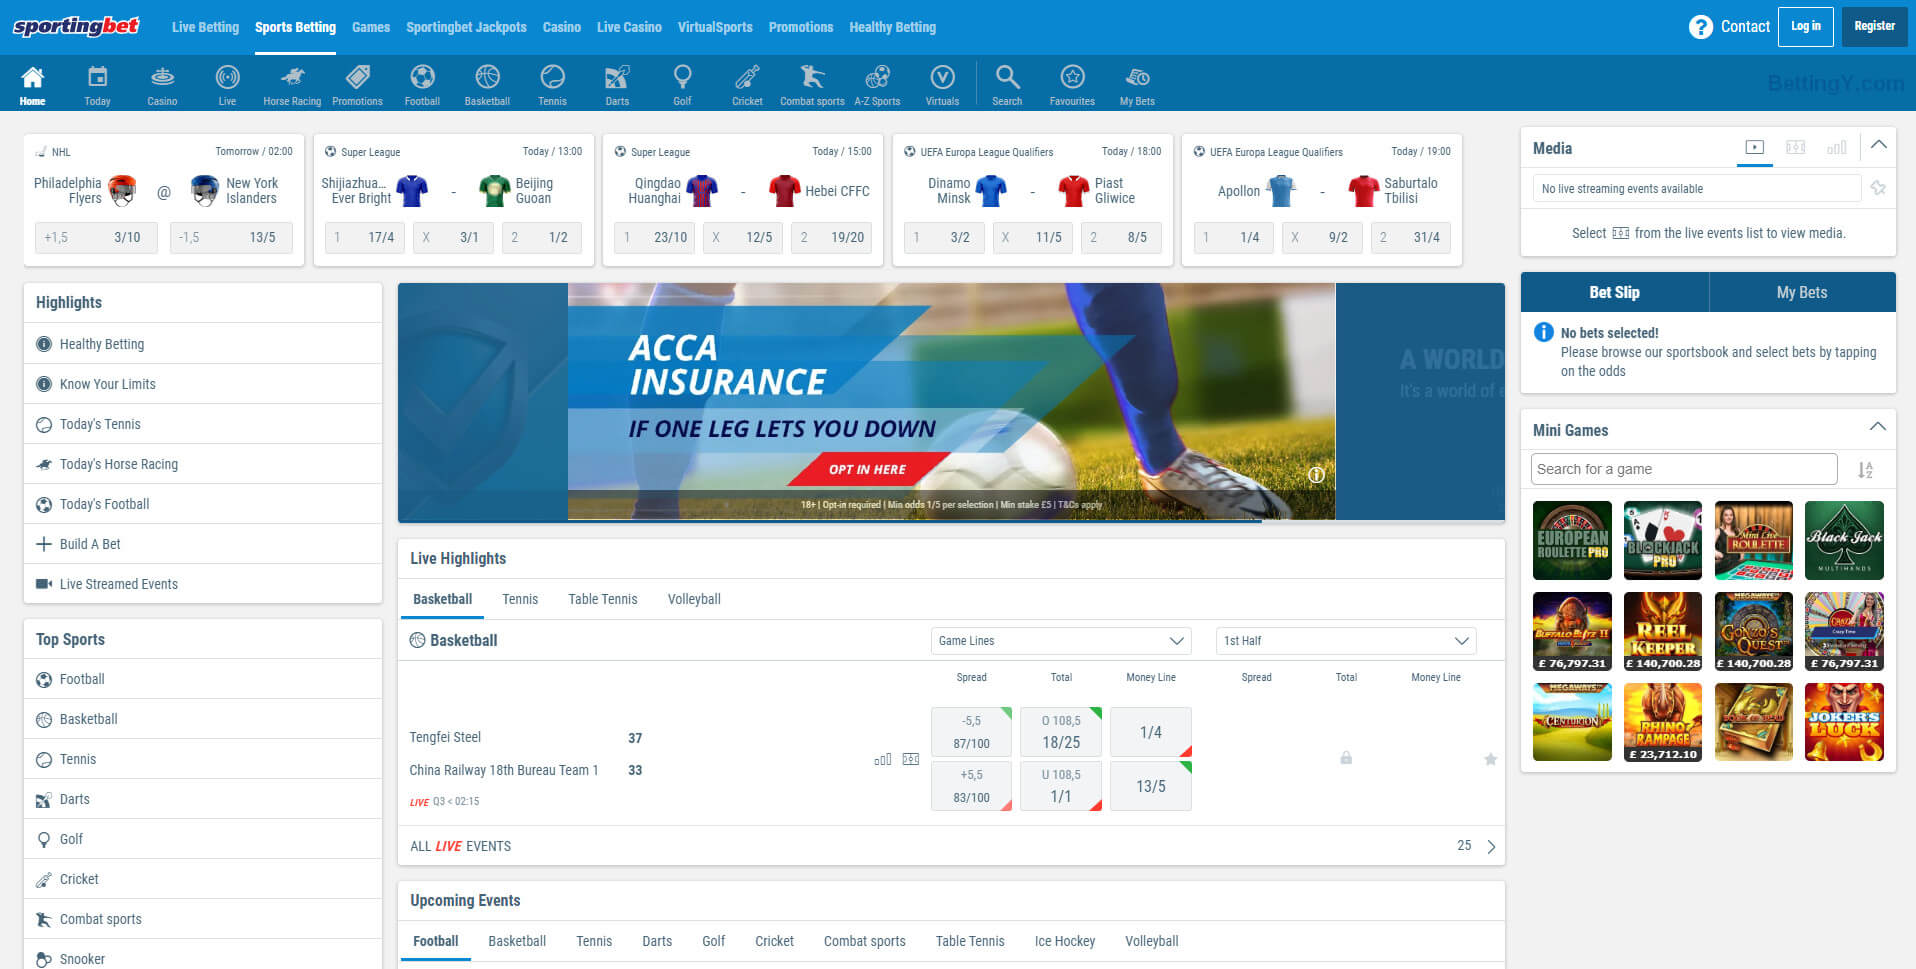 Sportingbet Design and Navigation